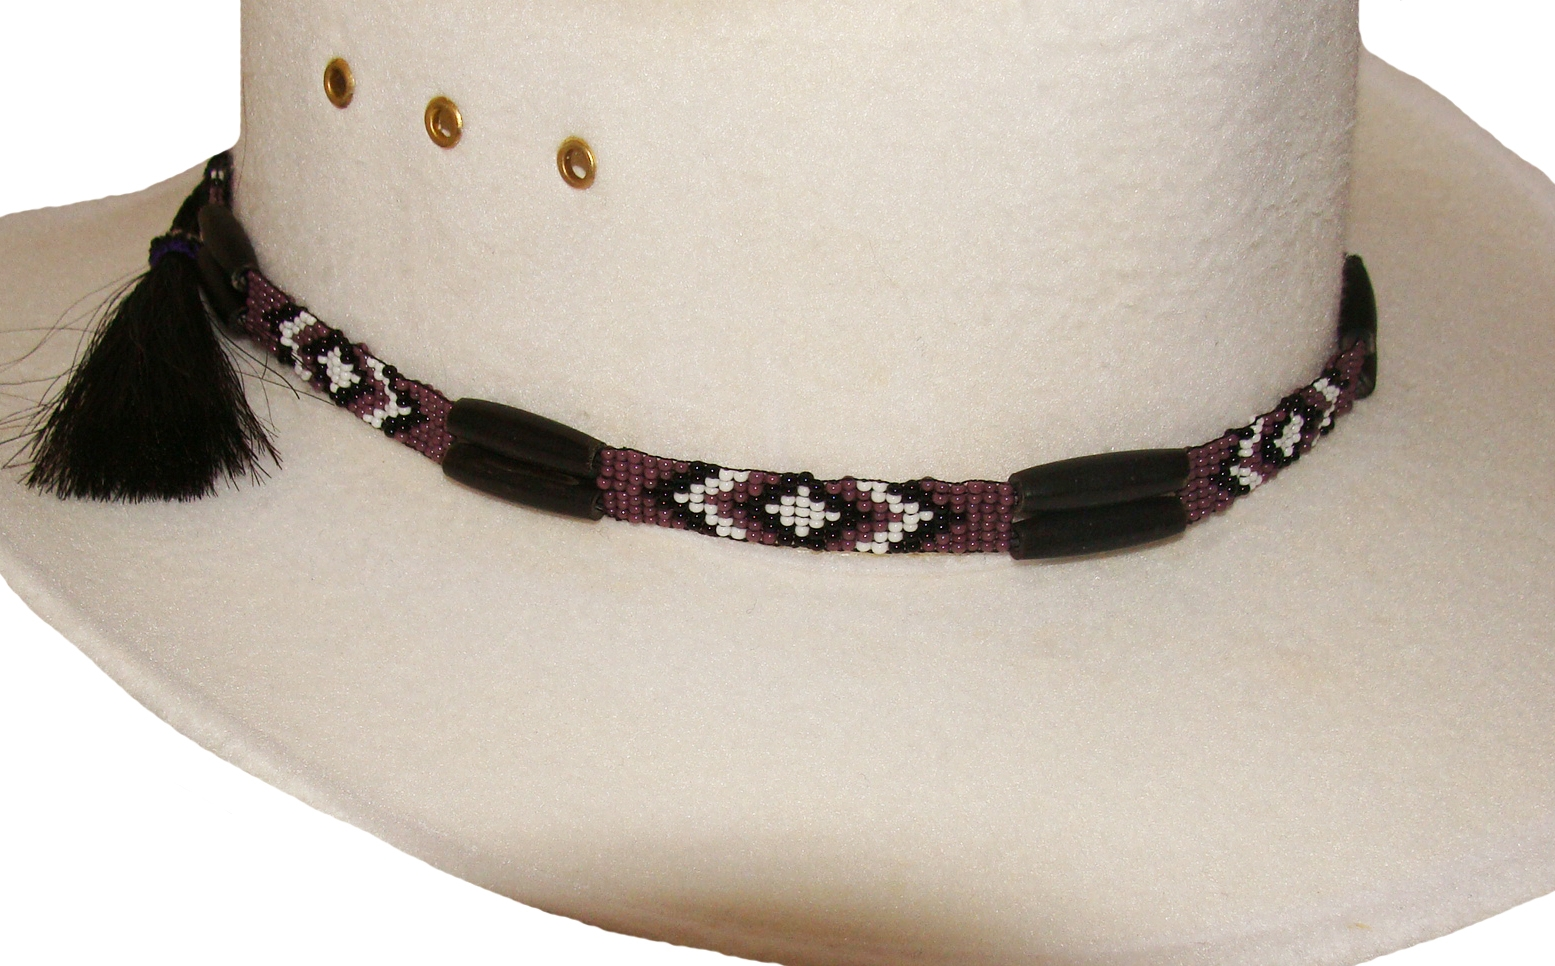 hatband hats images beading similar bands colorful rodeo hat patterns on cowboy beaded southwestern bright band bead to items artisanal jewelry indian western best cowgirl loom horses pinterest inspired